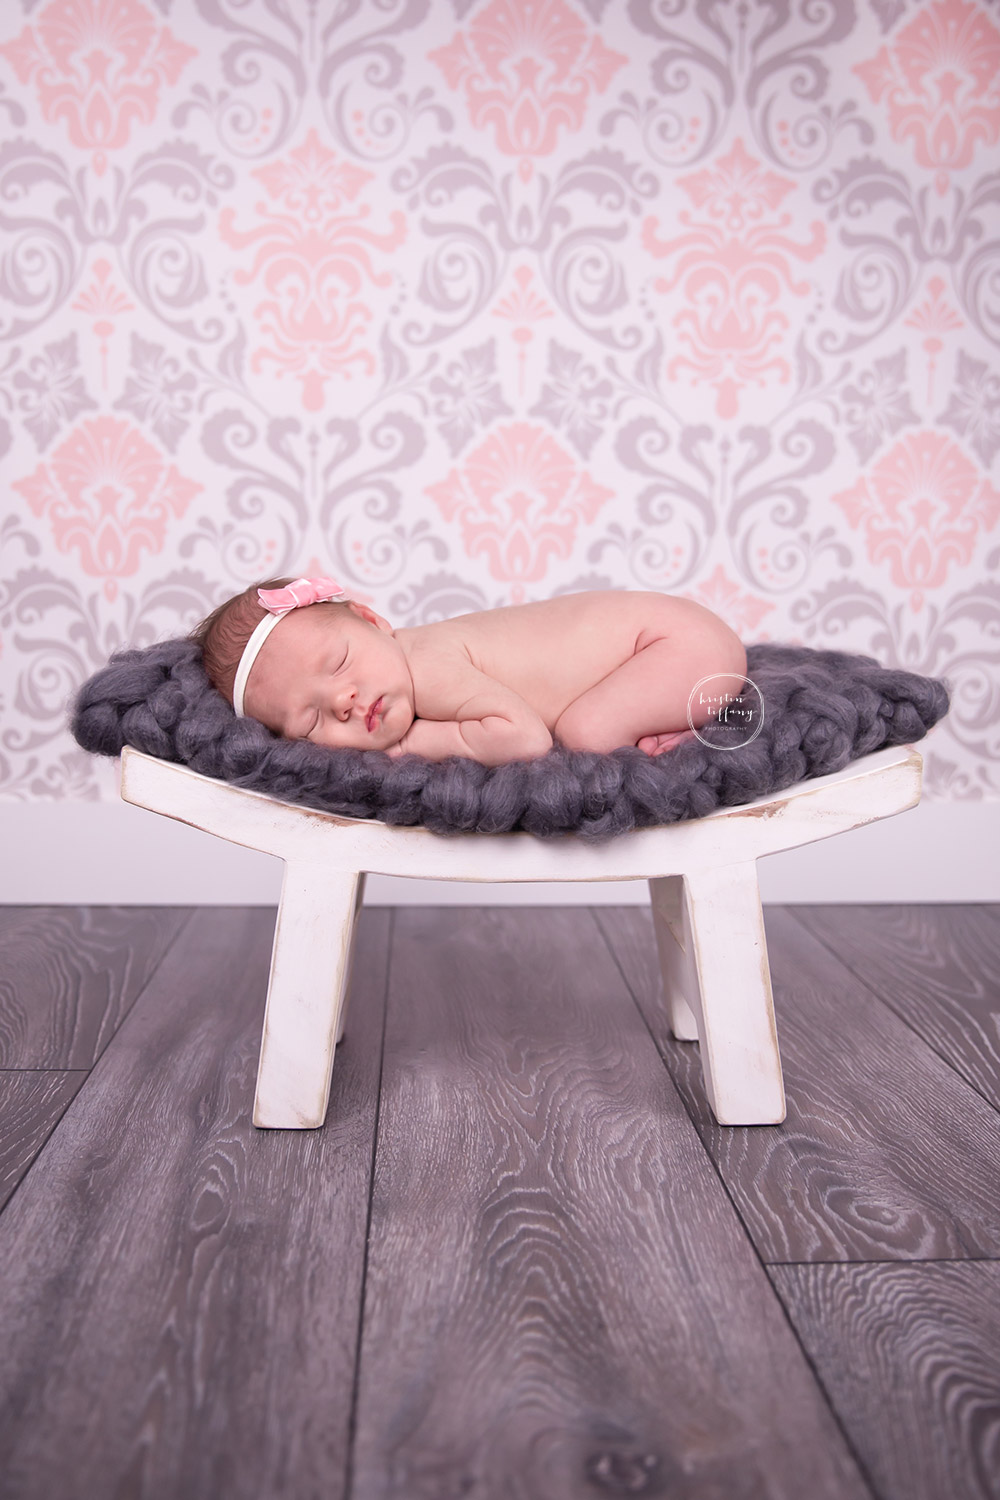 a newborn photo of a baby girl posed on a wooden stool